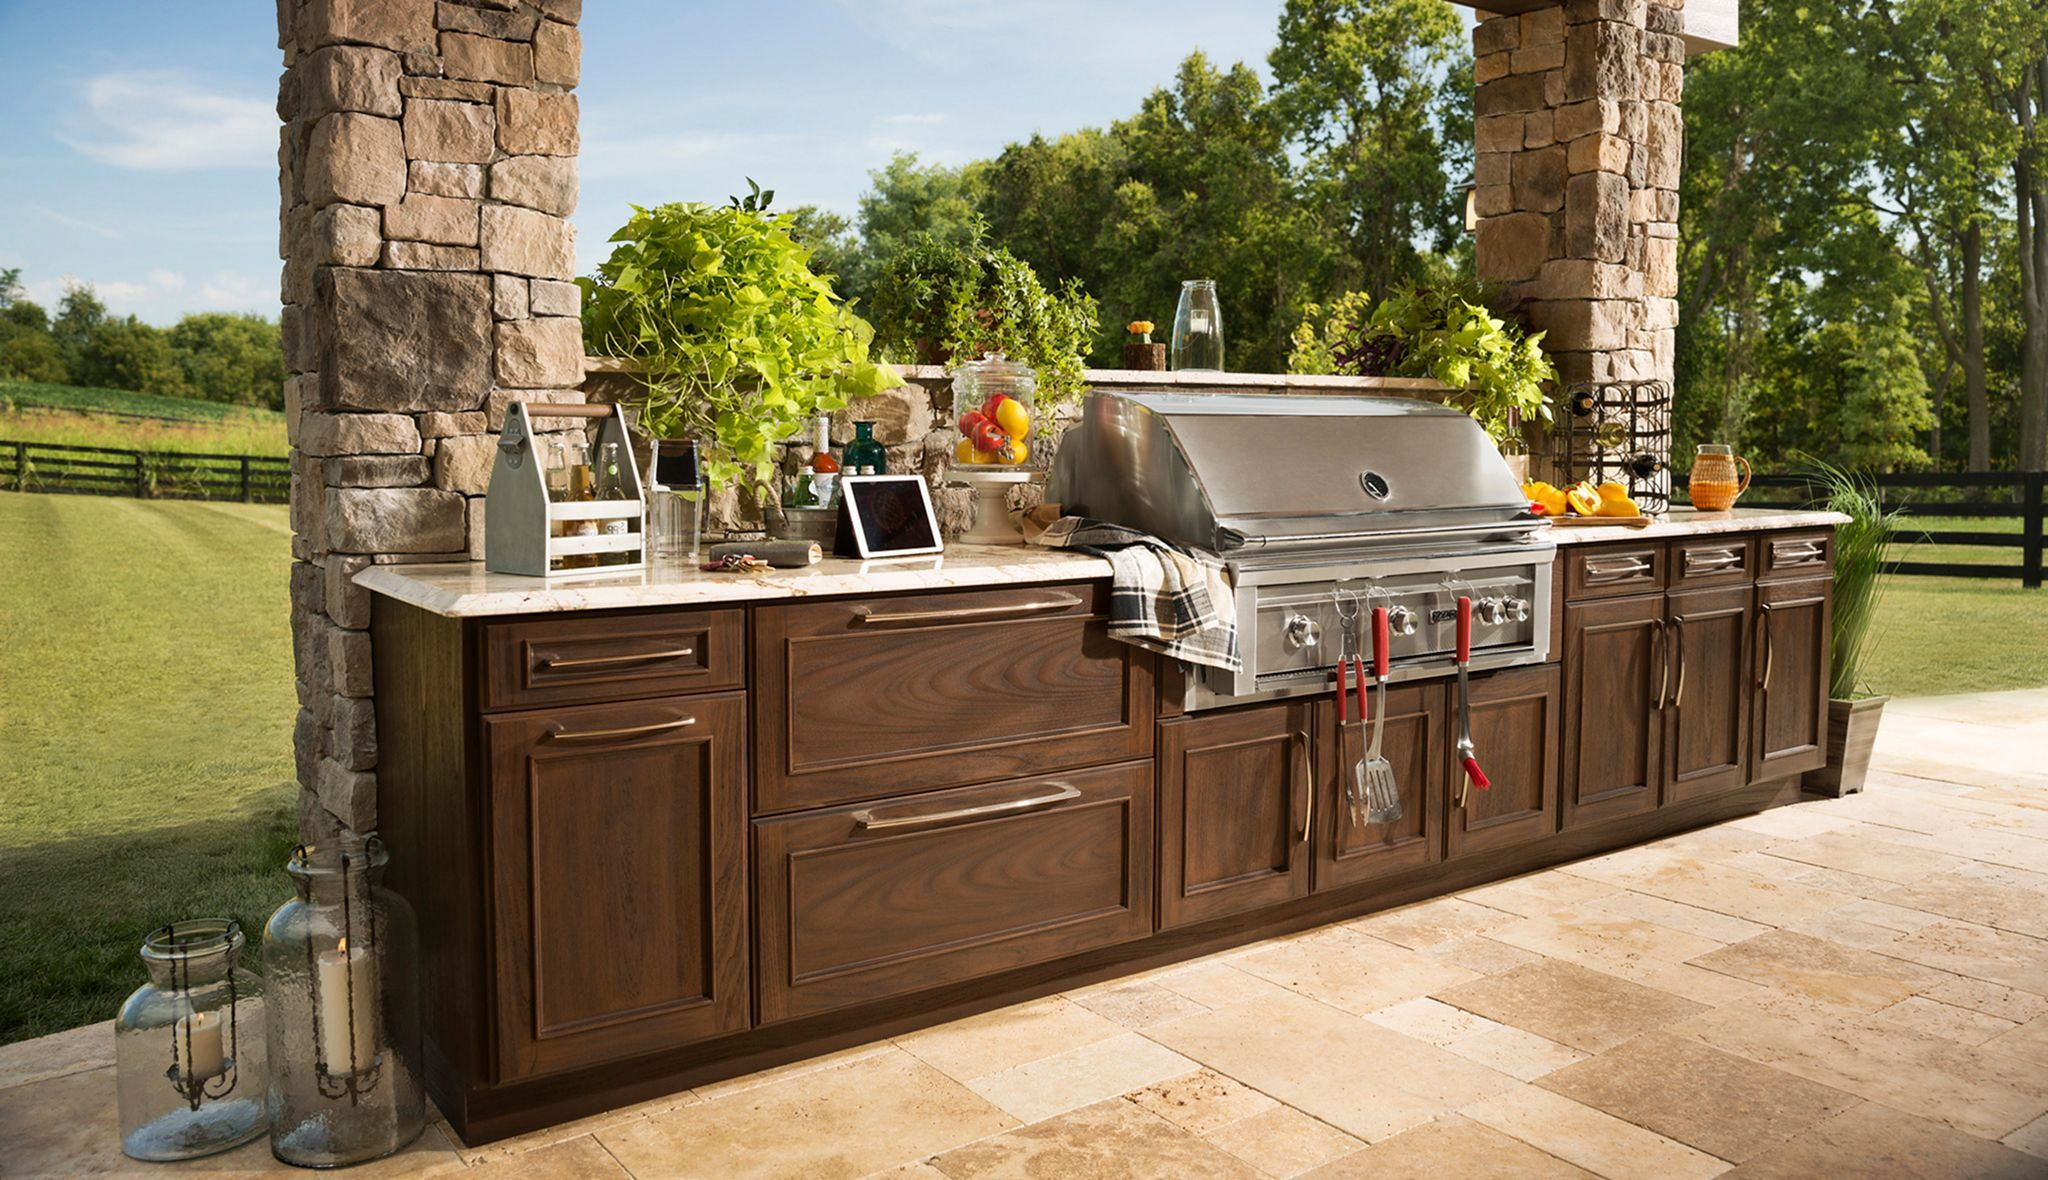 10 Impressive Ideas For Your Dream Home Yard Outdoor Kitchen Outdoor Kitchen Cabinets Diy Outdoor Kitchen